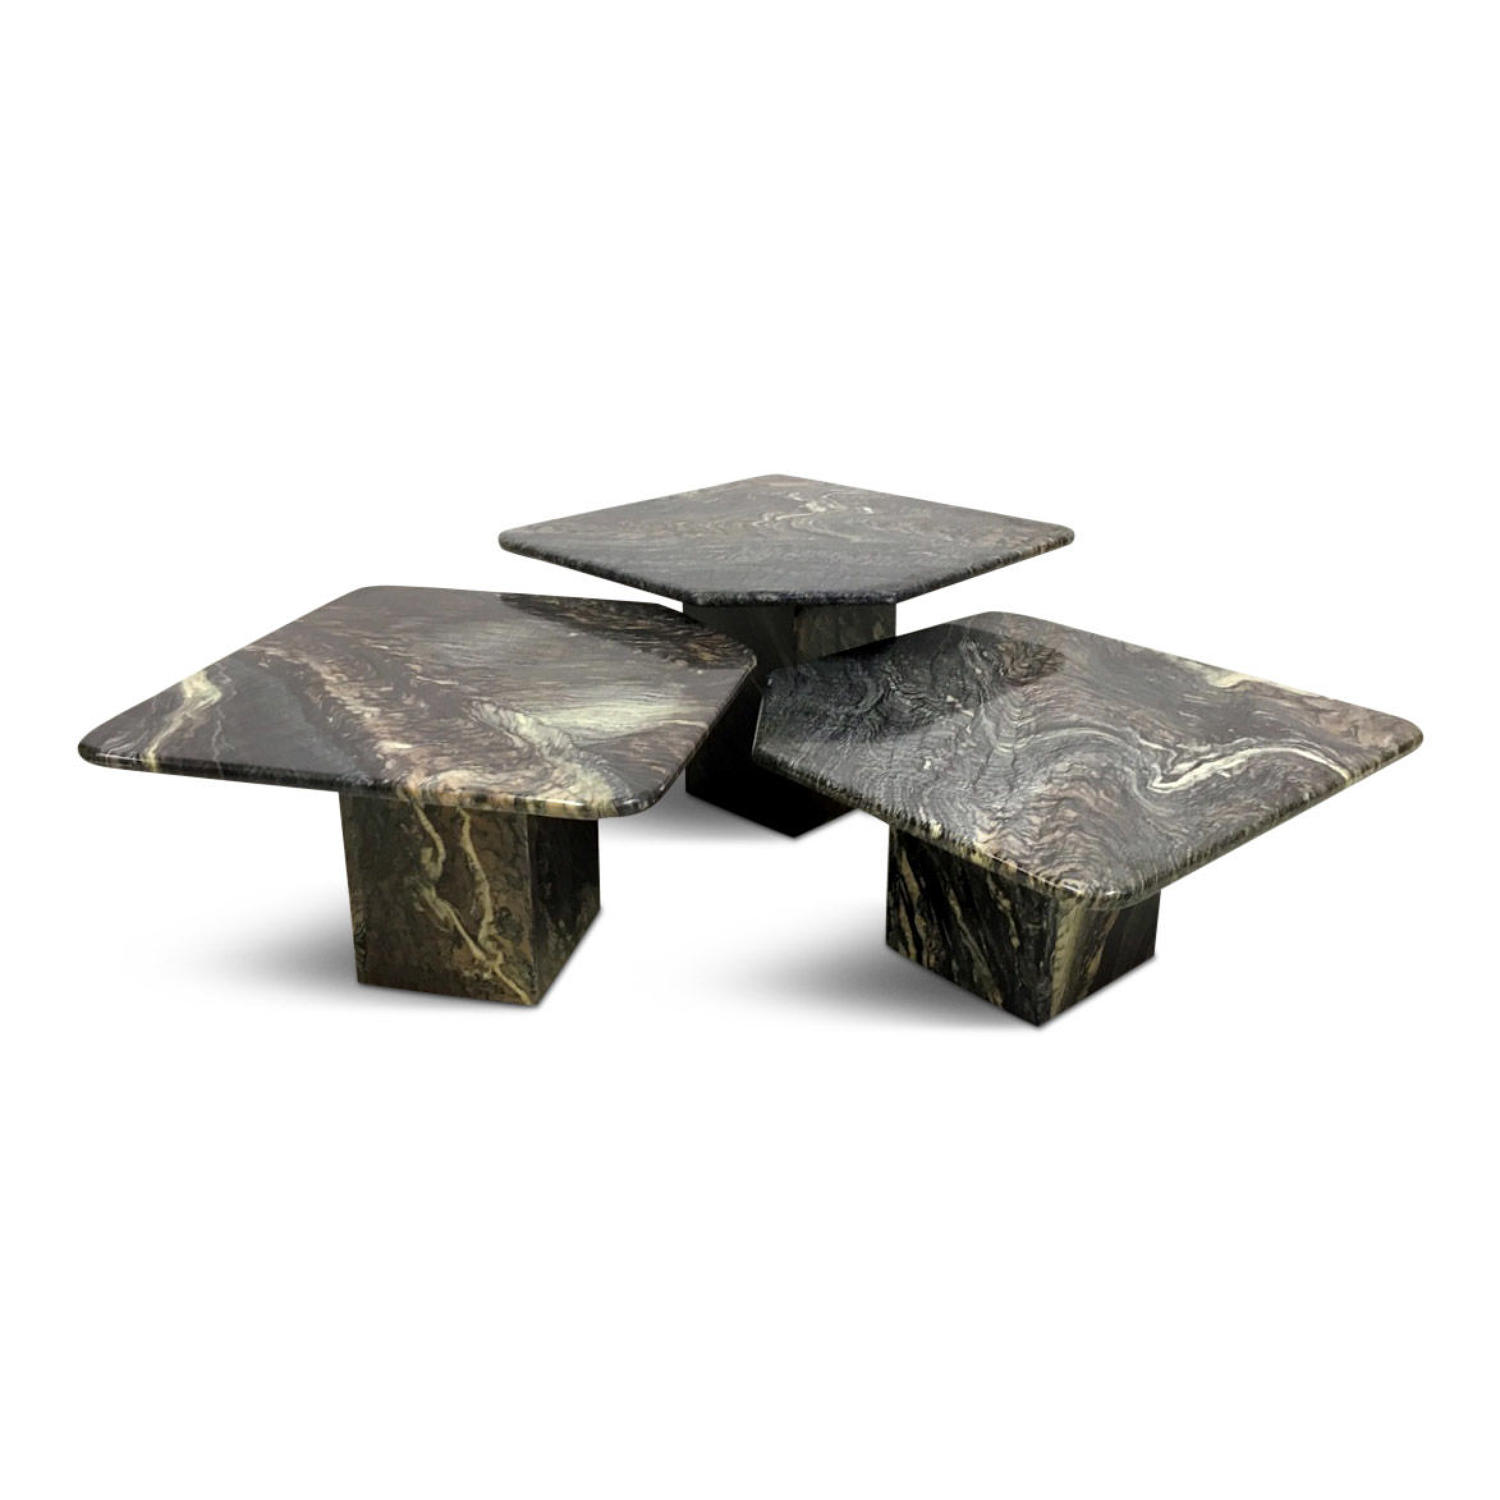 A vintage set of Italian marble coffee tables